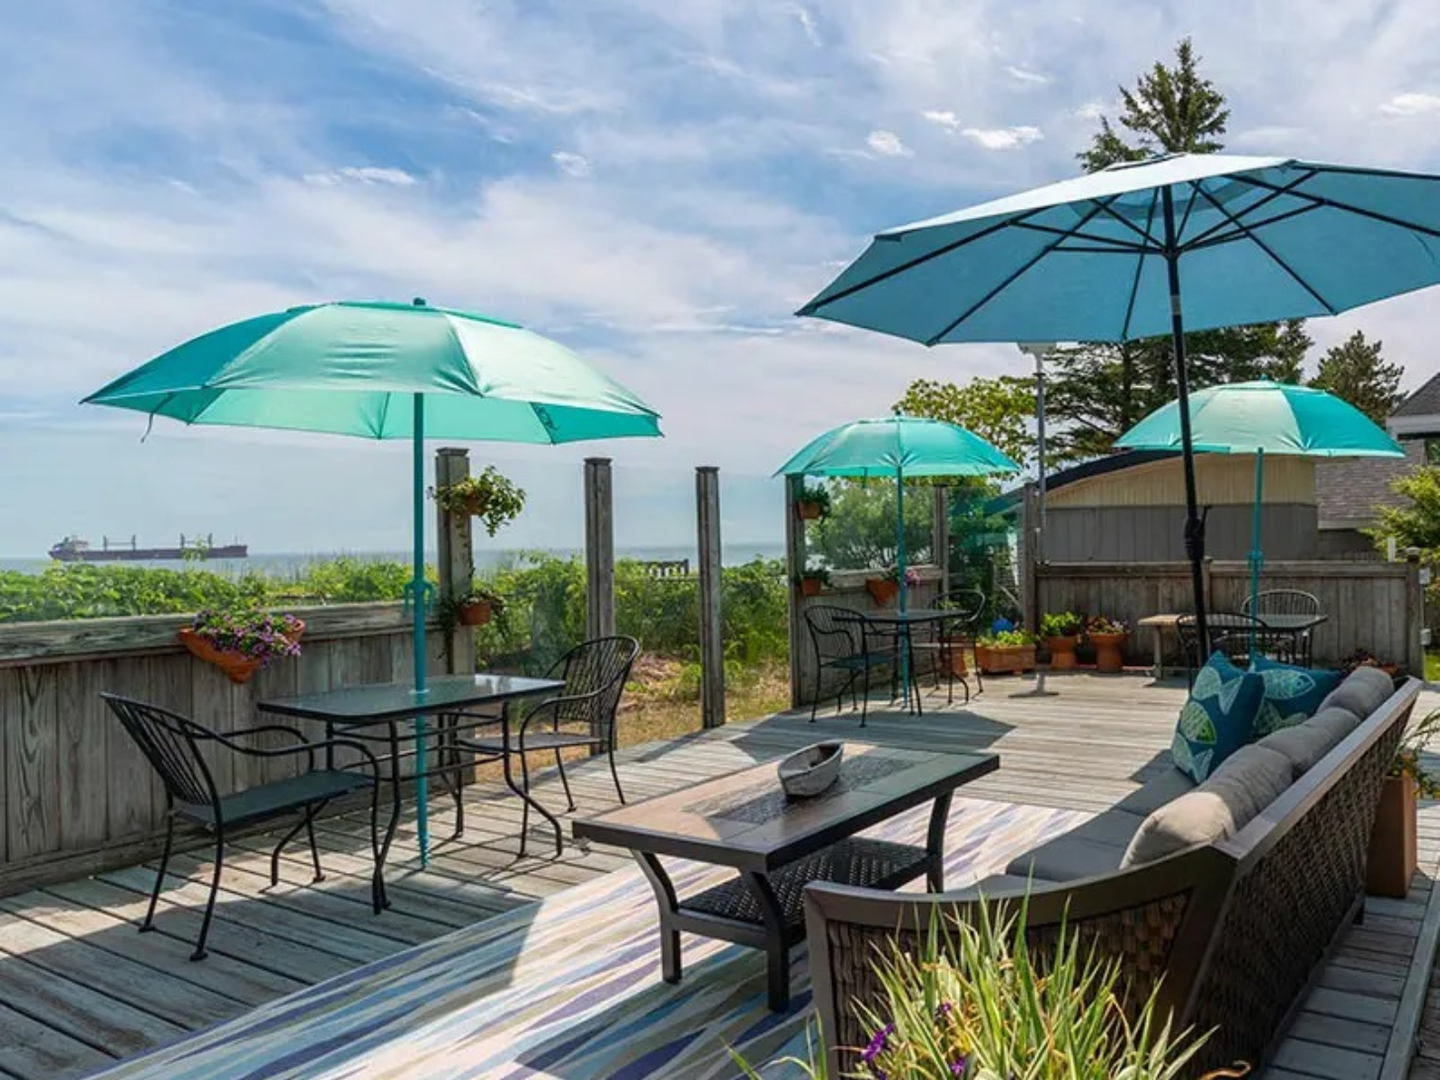 A green lawn chair with an umbrella at Solglimt Bed and Breakfast .